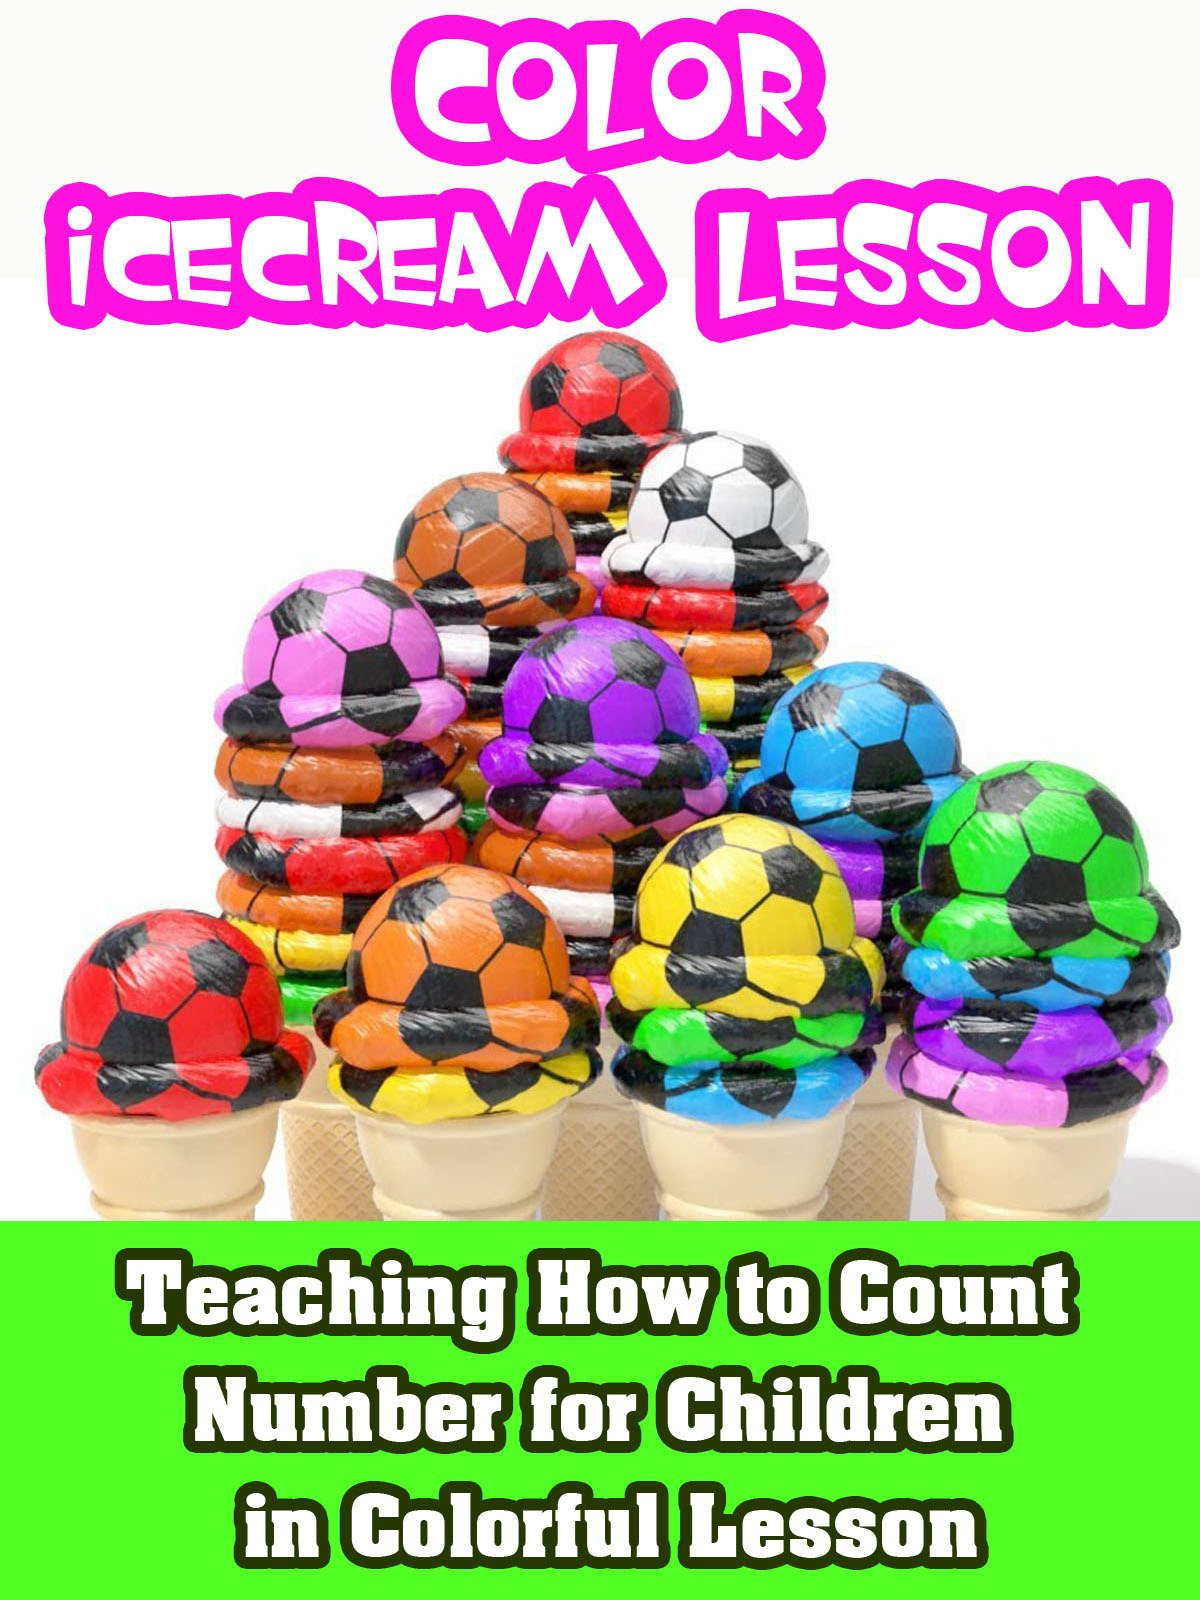 Teaching how to Count Number for children in colorful lesson